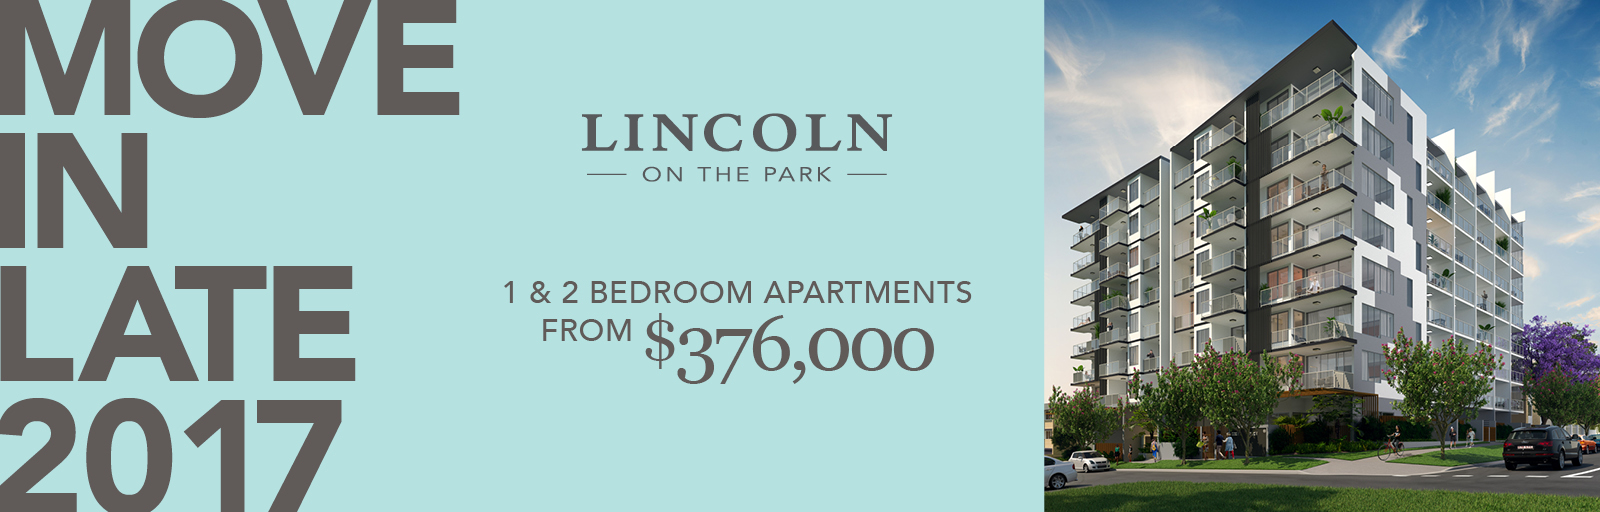 Lincoln on the Park